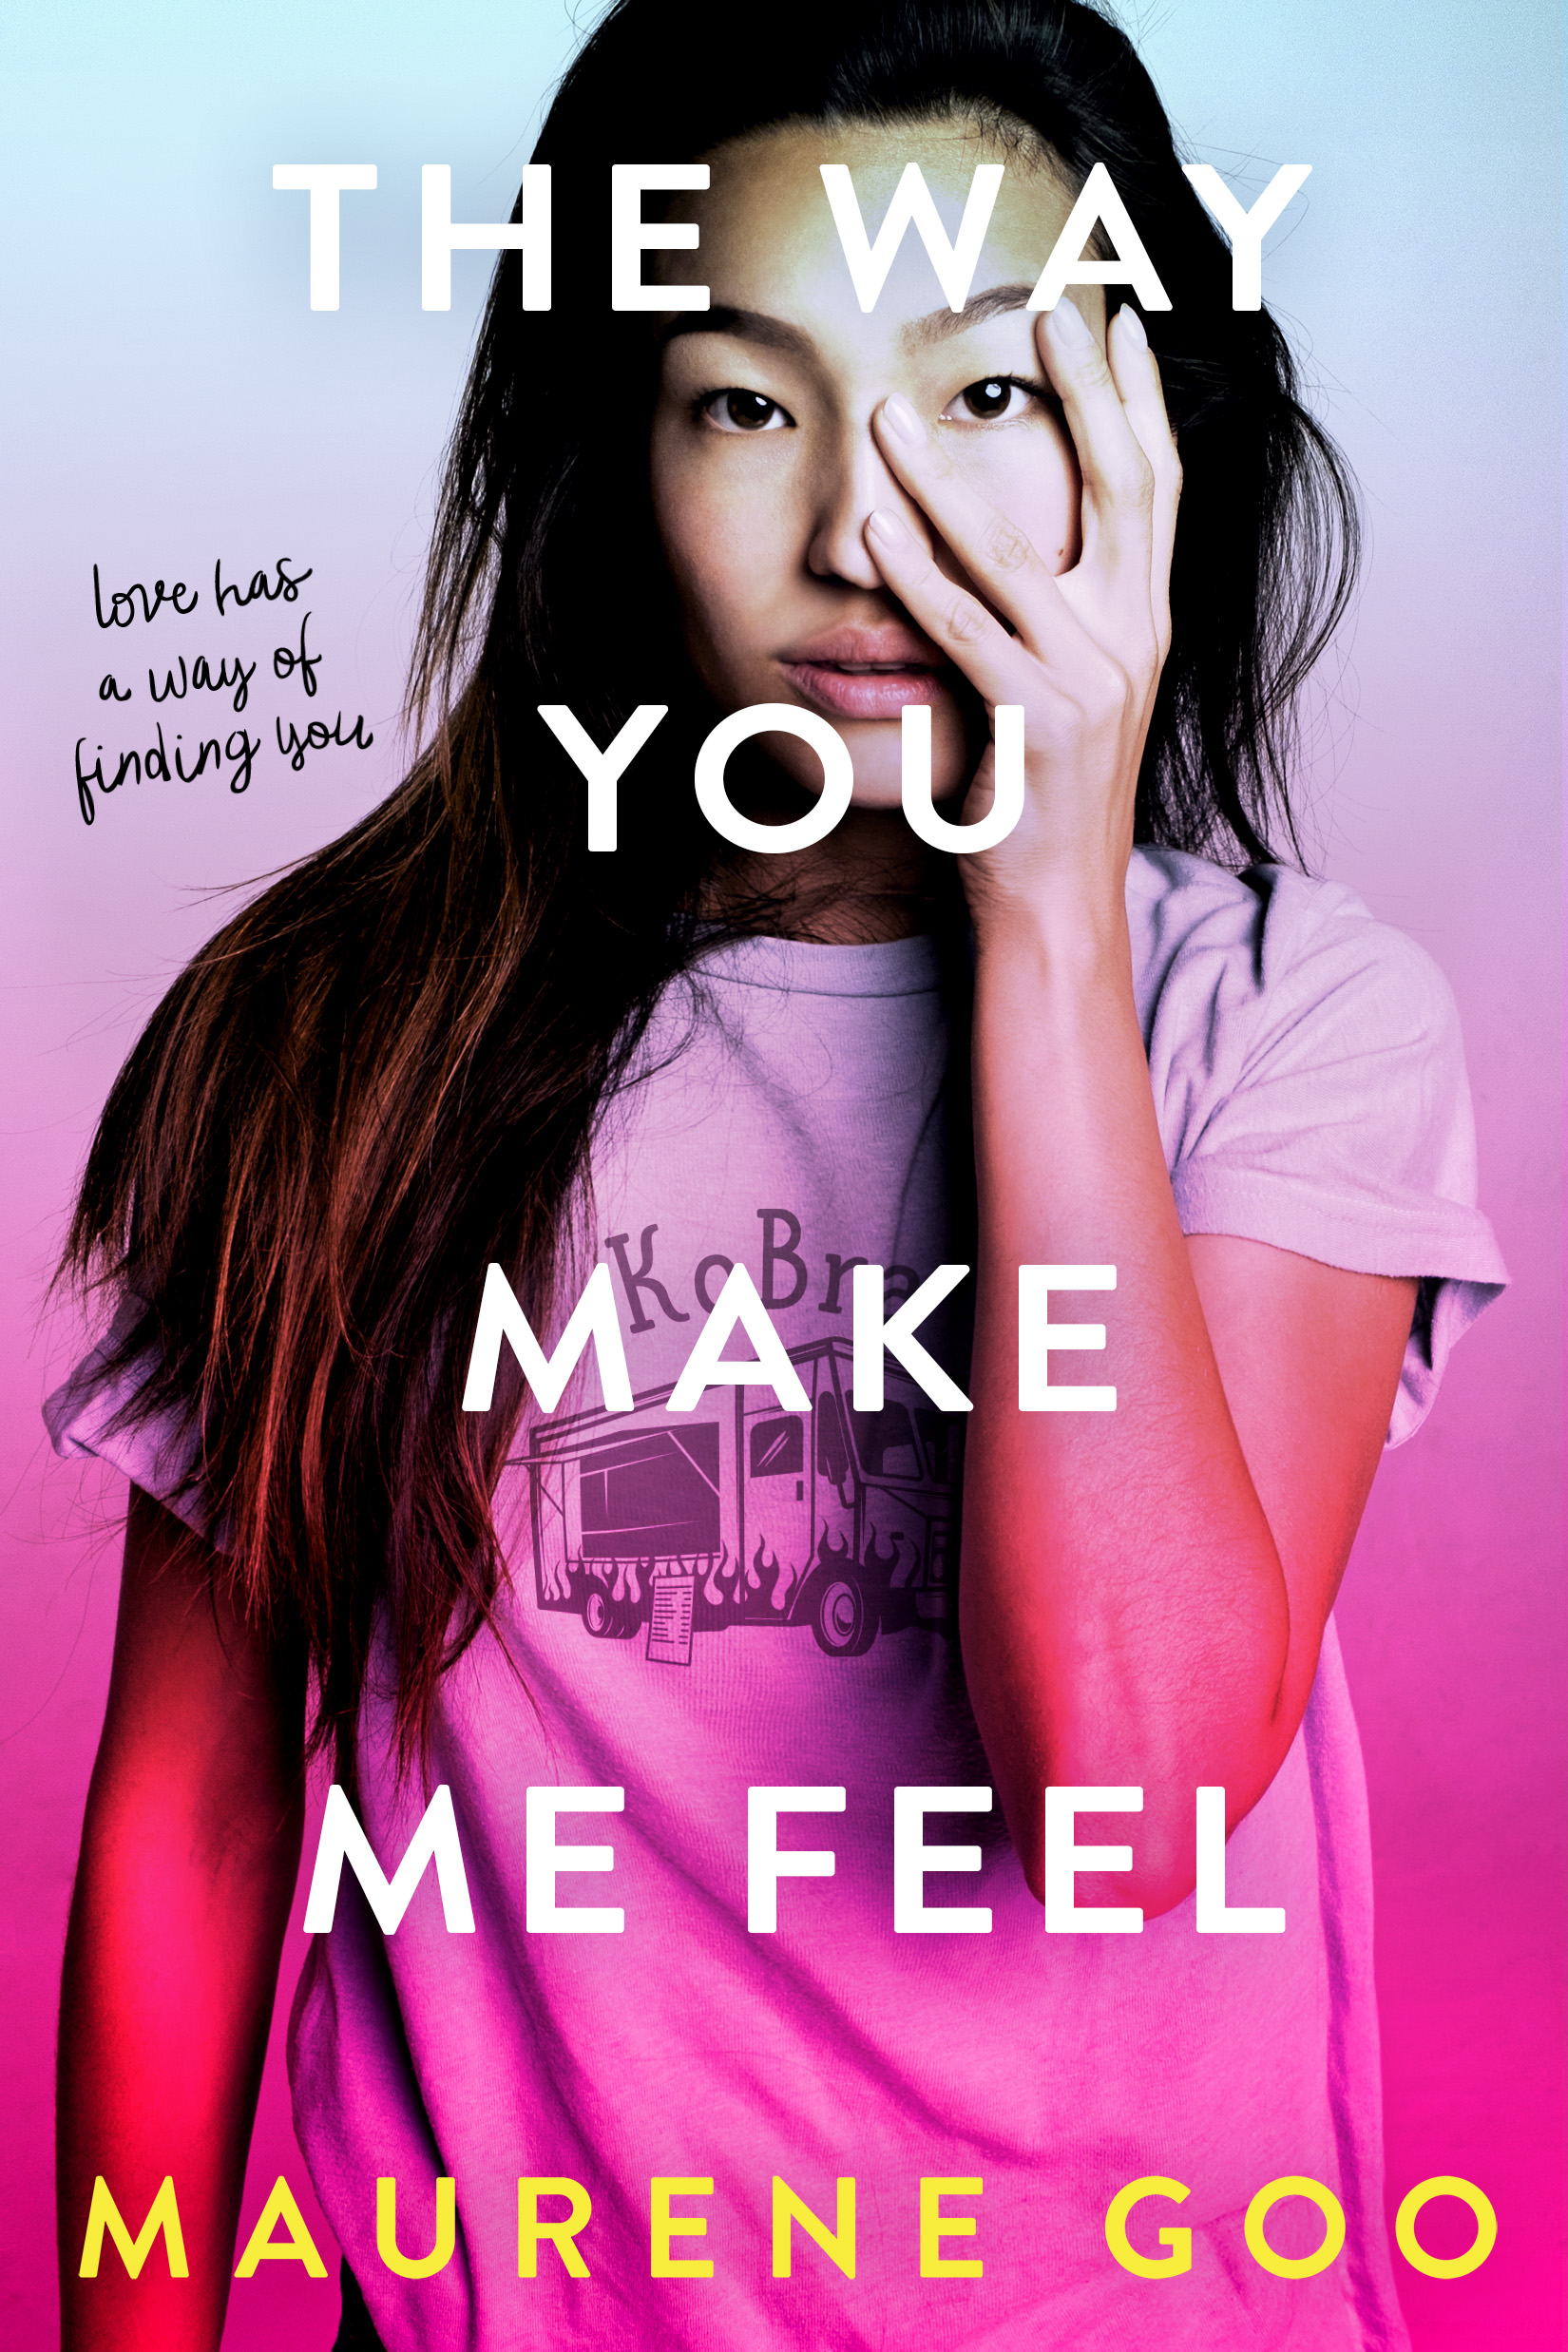 The Way You Make Me Feel by Maurene Goo | SLJ Review